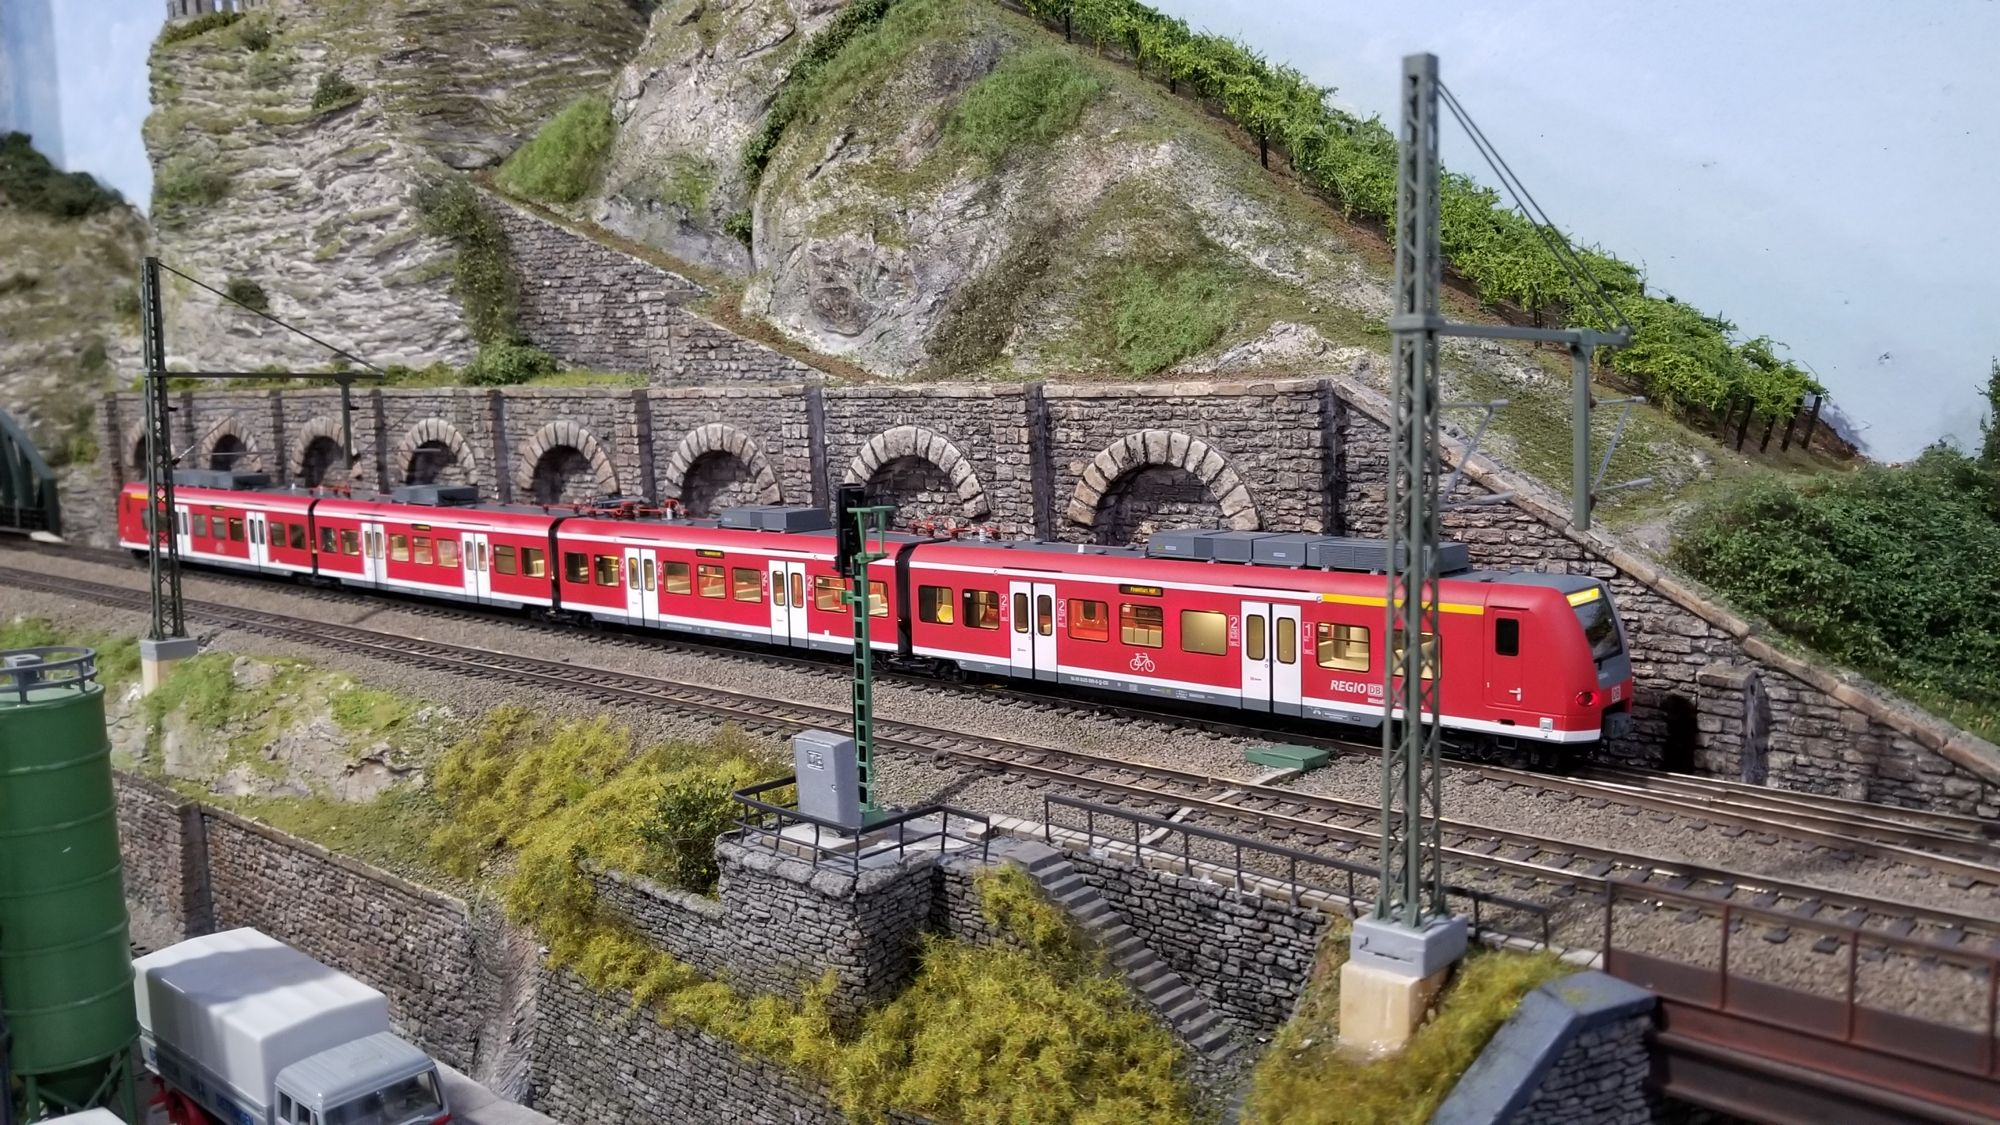 Markus Weller's Rhine River Valley Railroad